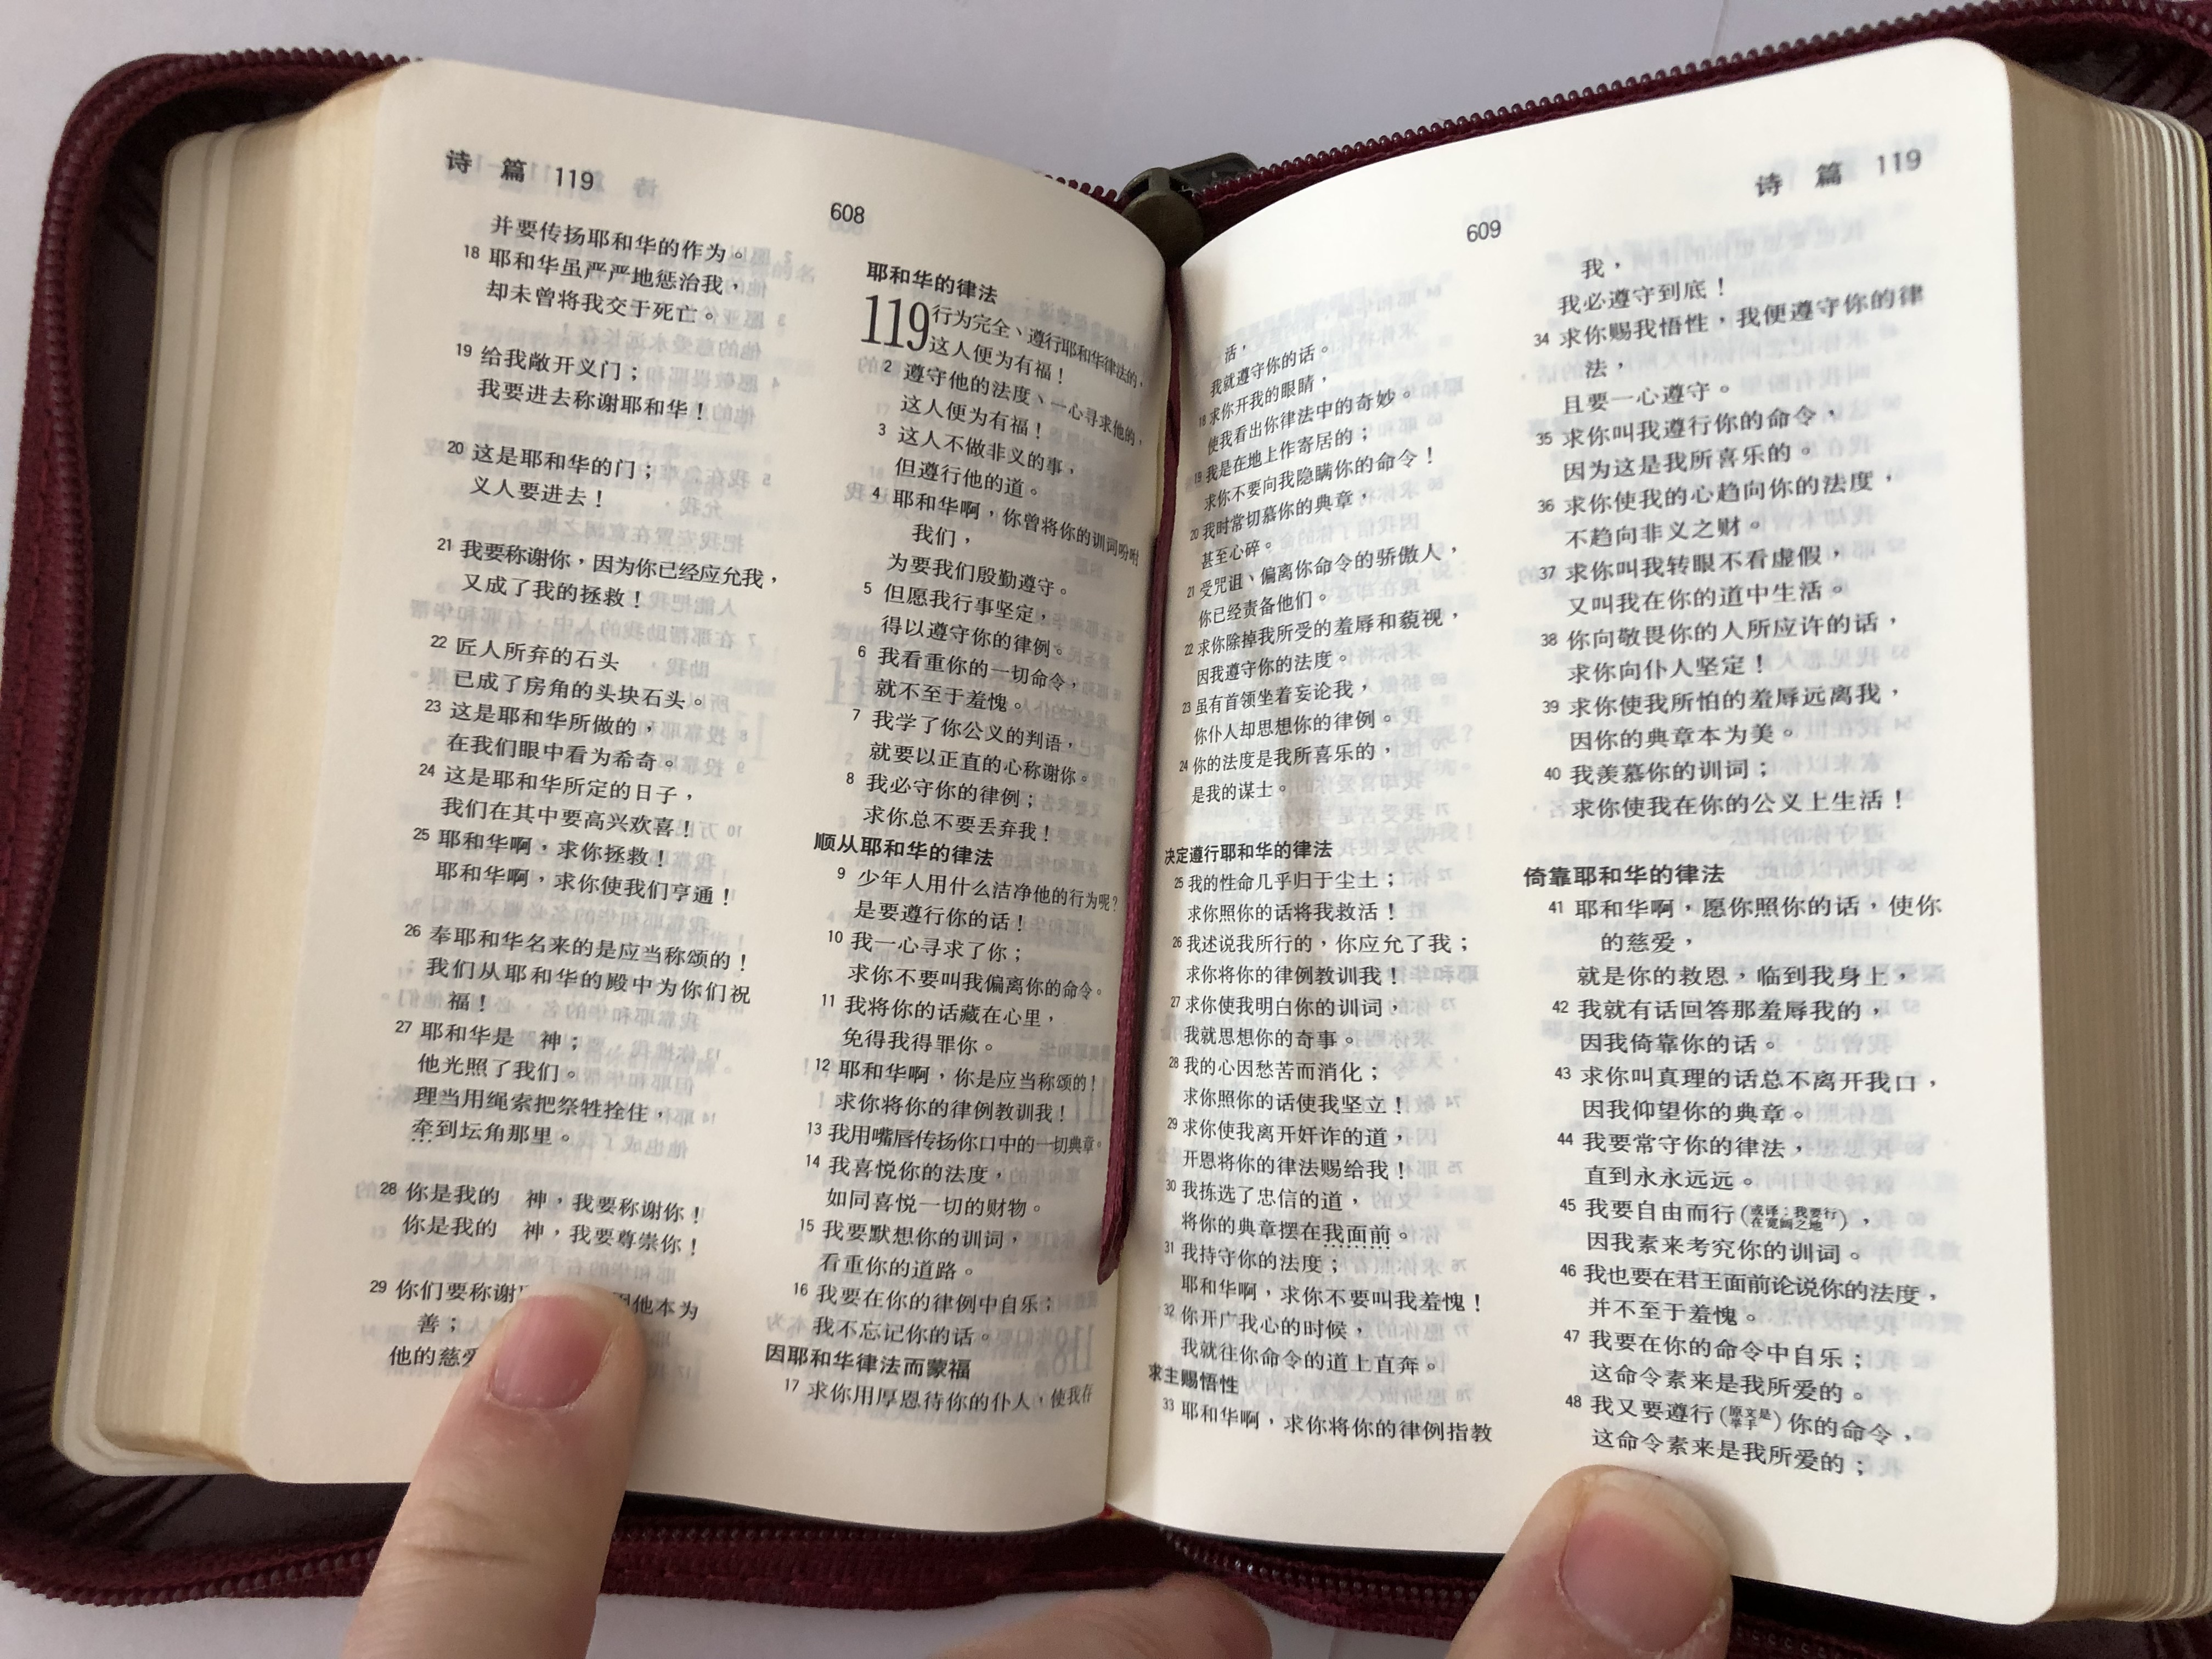 the-holy-bible-chinese-union-version-new-punctuation-maroon-leather-bound-golden-edges-zipper-cunpss-37z-m-bsm-2006-9-.jpg